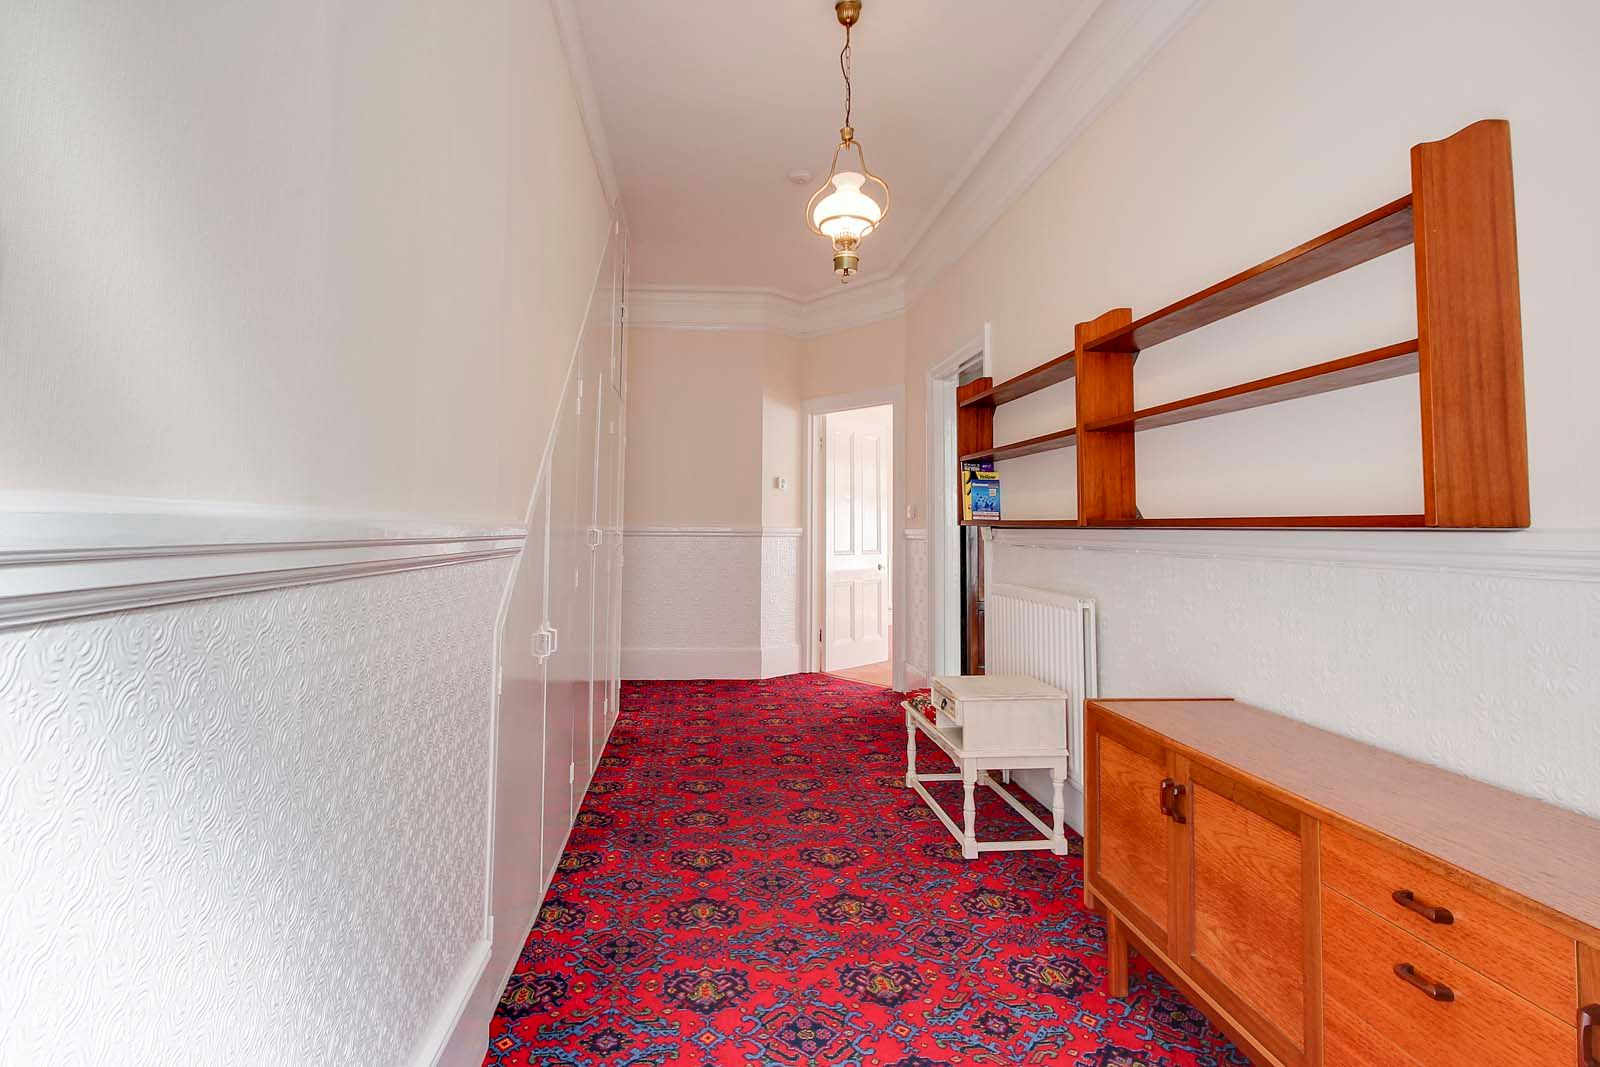 2 bed Apartment to rent in Worthing - Hallway (Property Image 5)